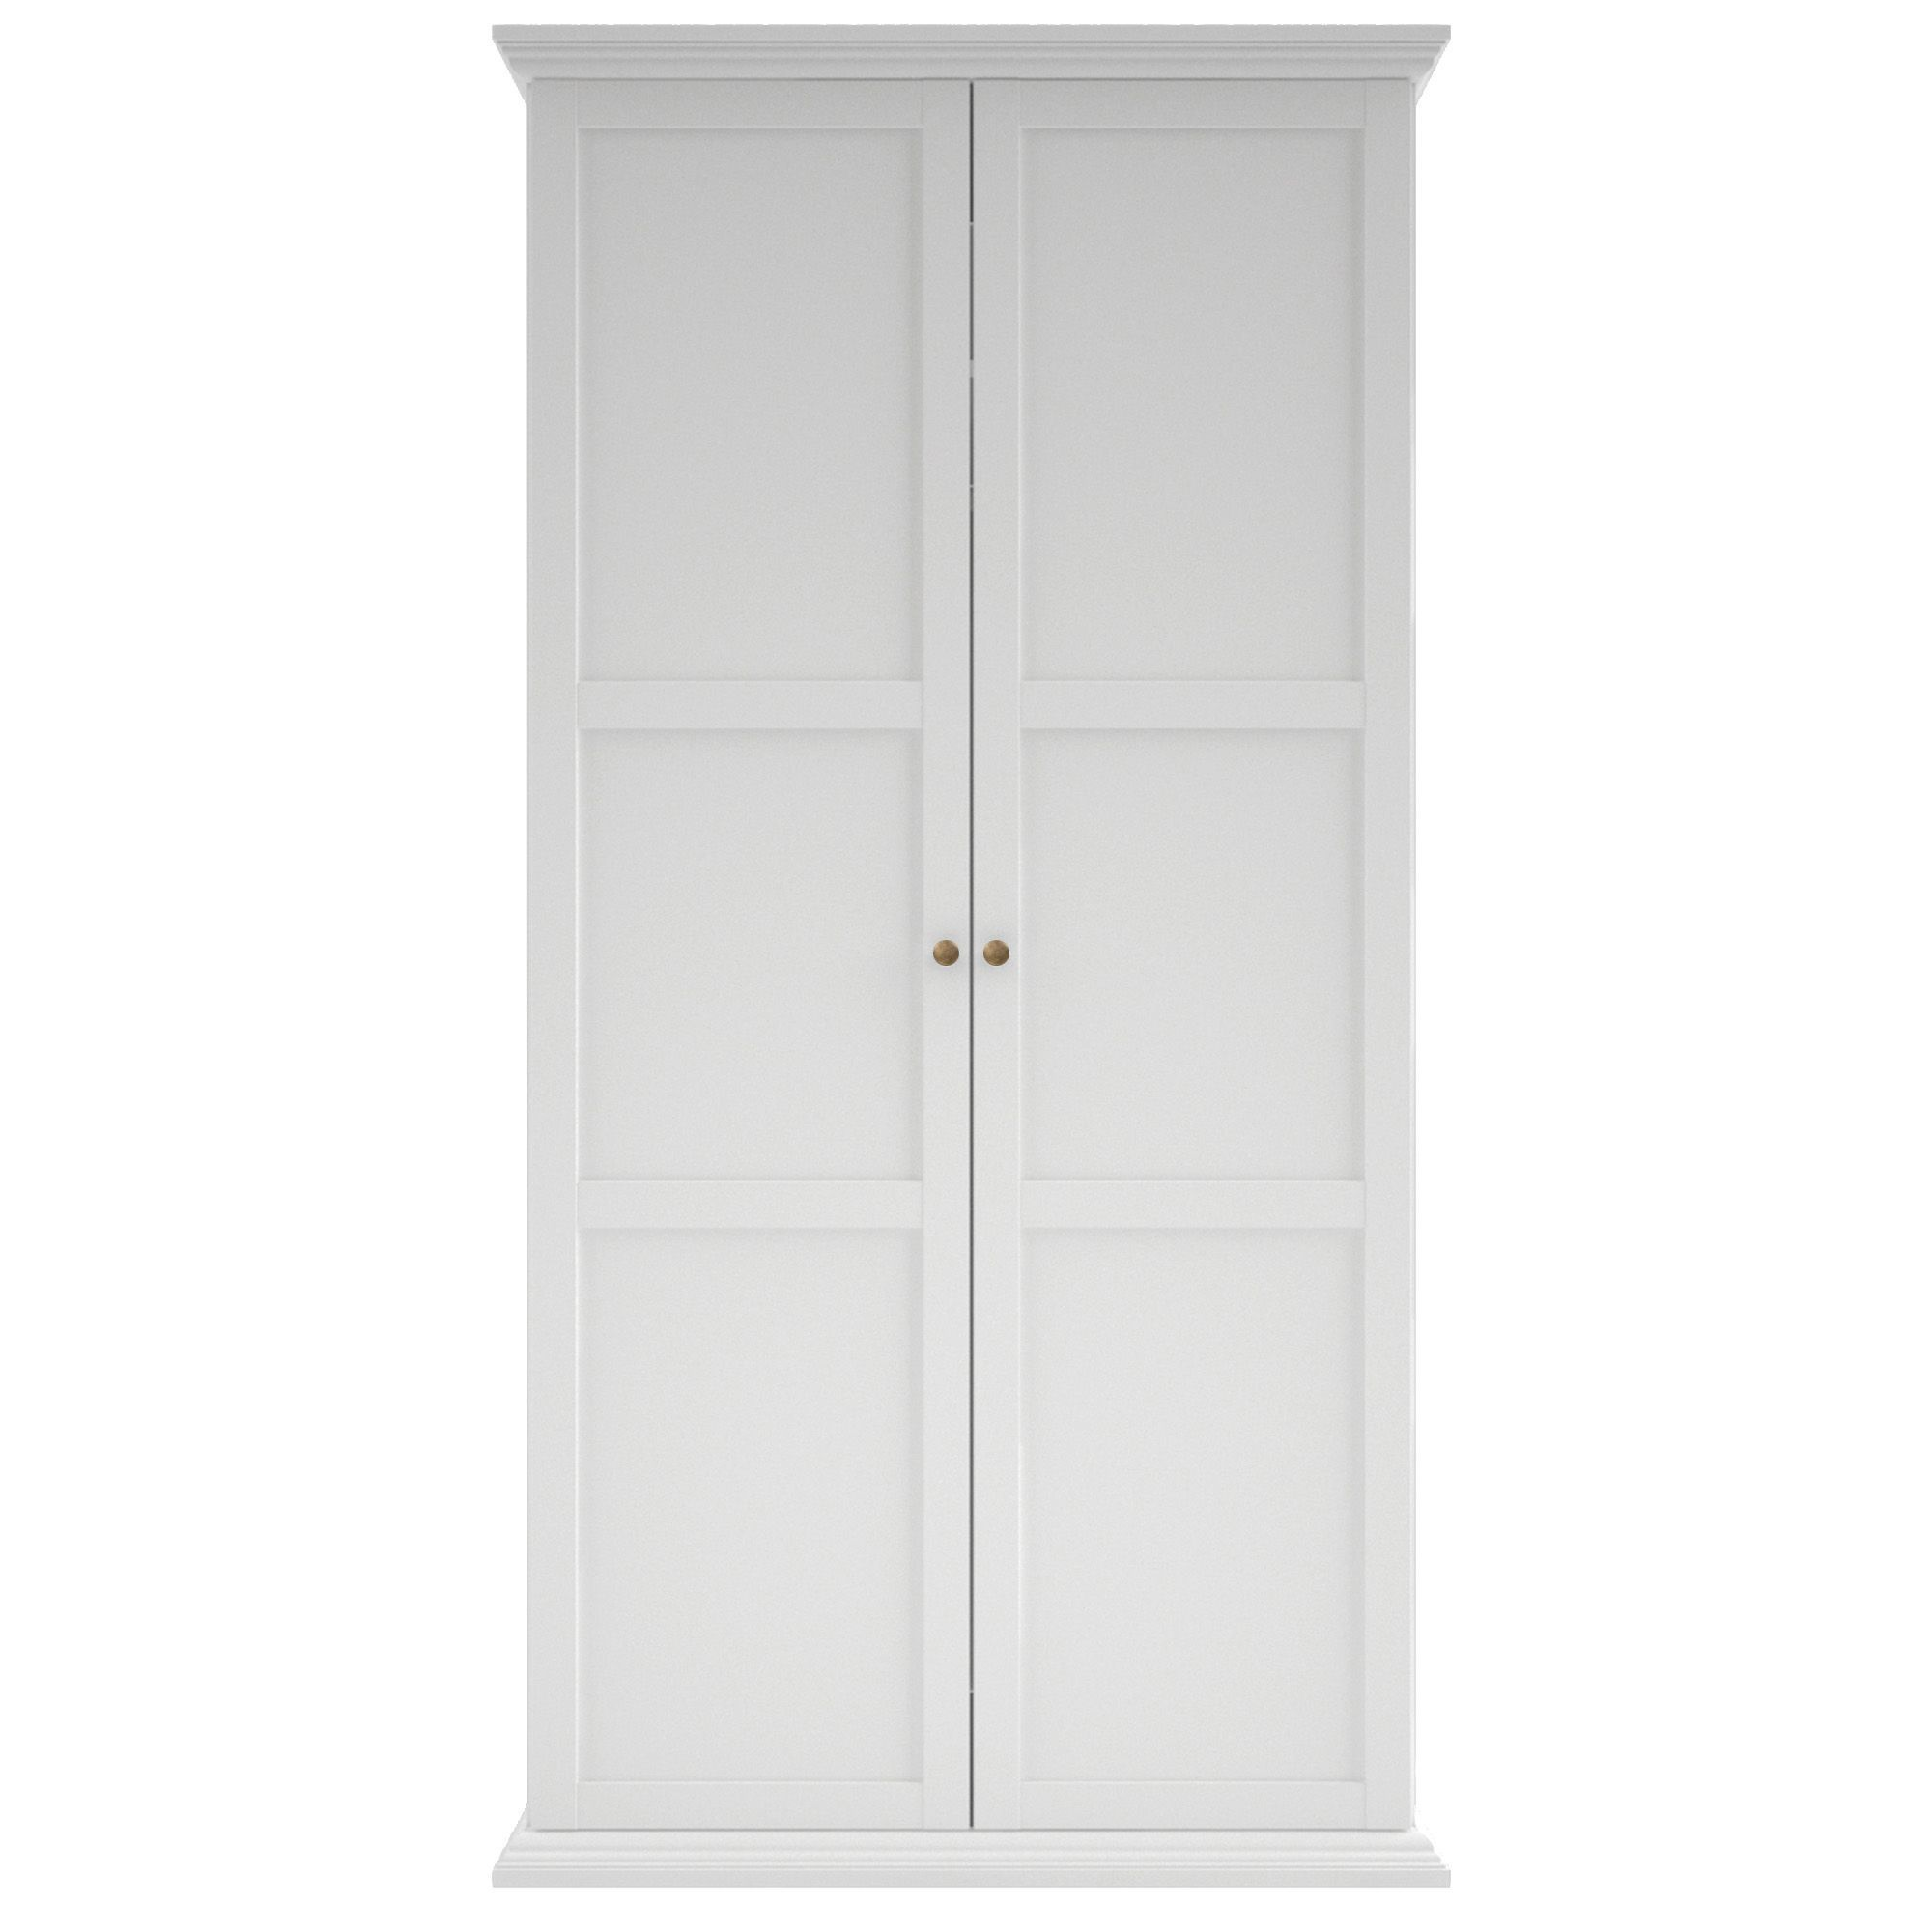 Isabella White 2 Door Wardrobe (H)2030 mm (W)1.043 M |